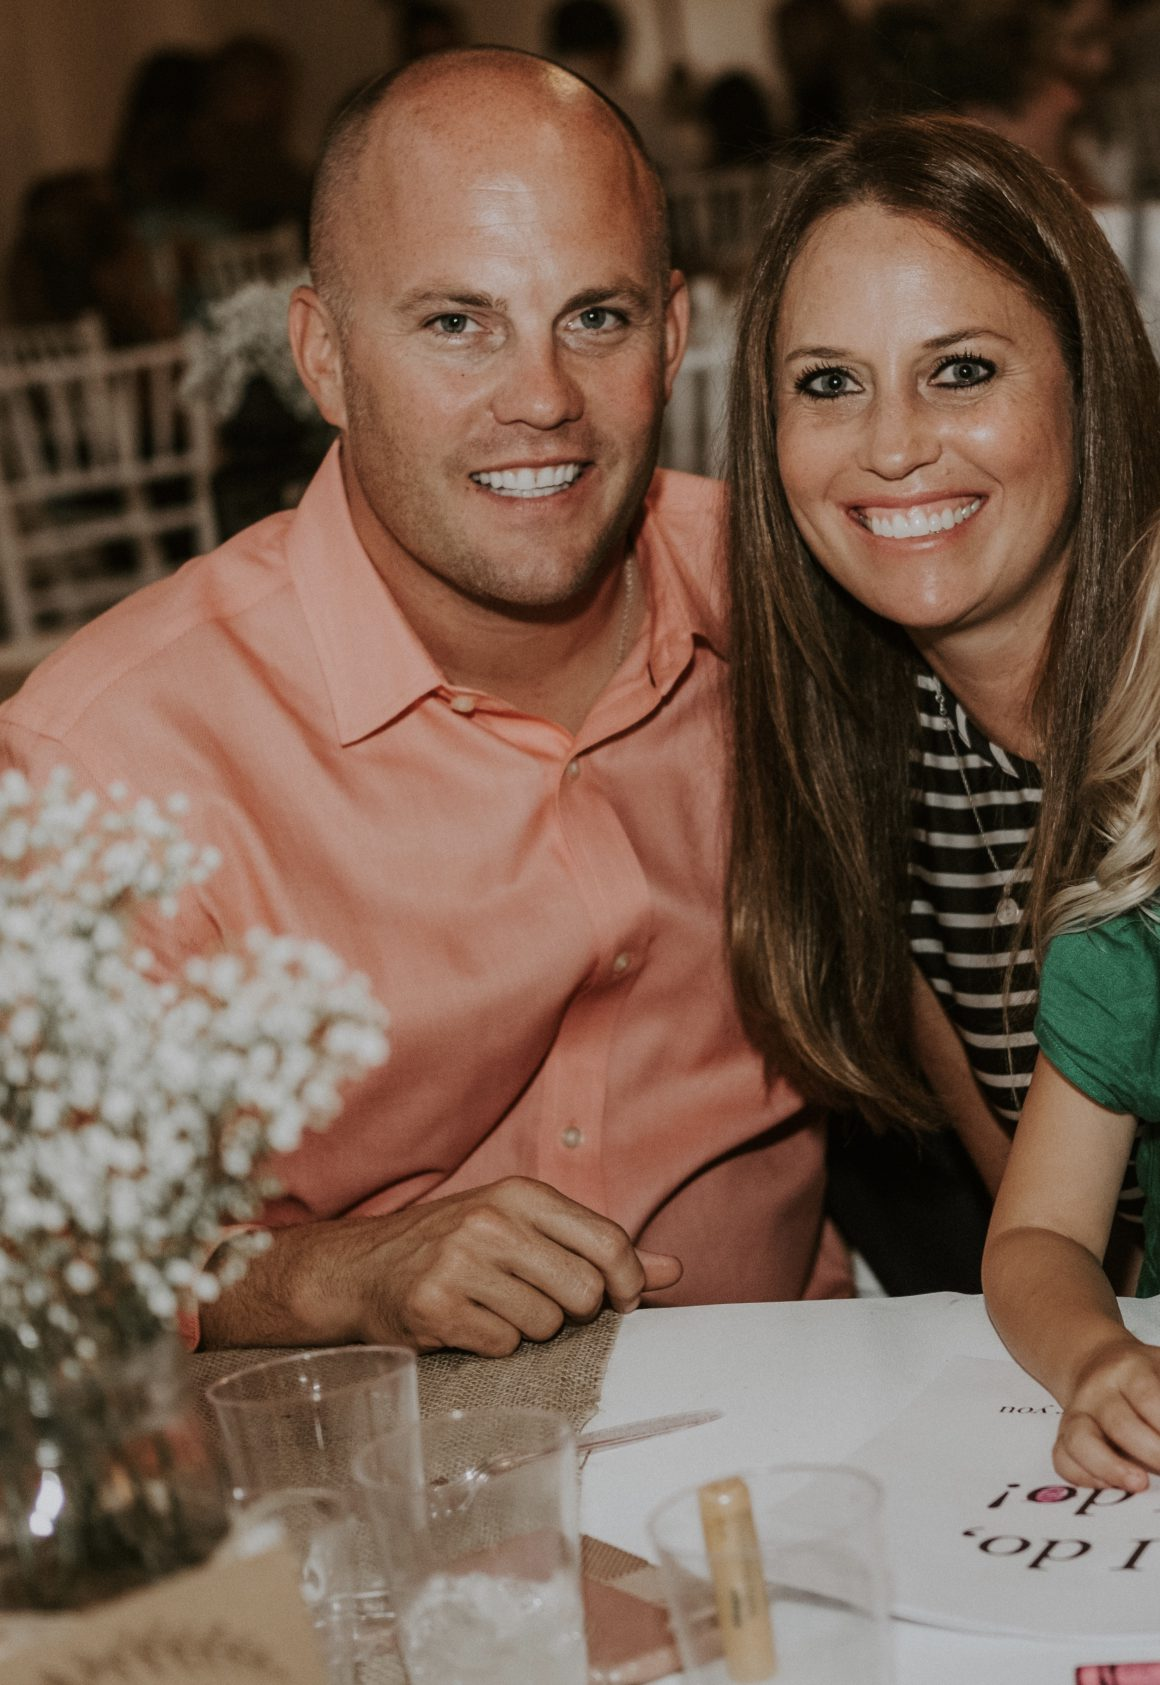 Cody and Tara Newton are key Bonvera leaders who believe in Bonvera's mission and vision.